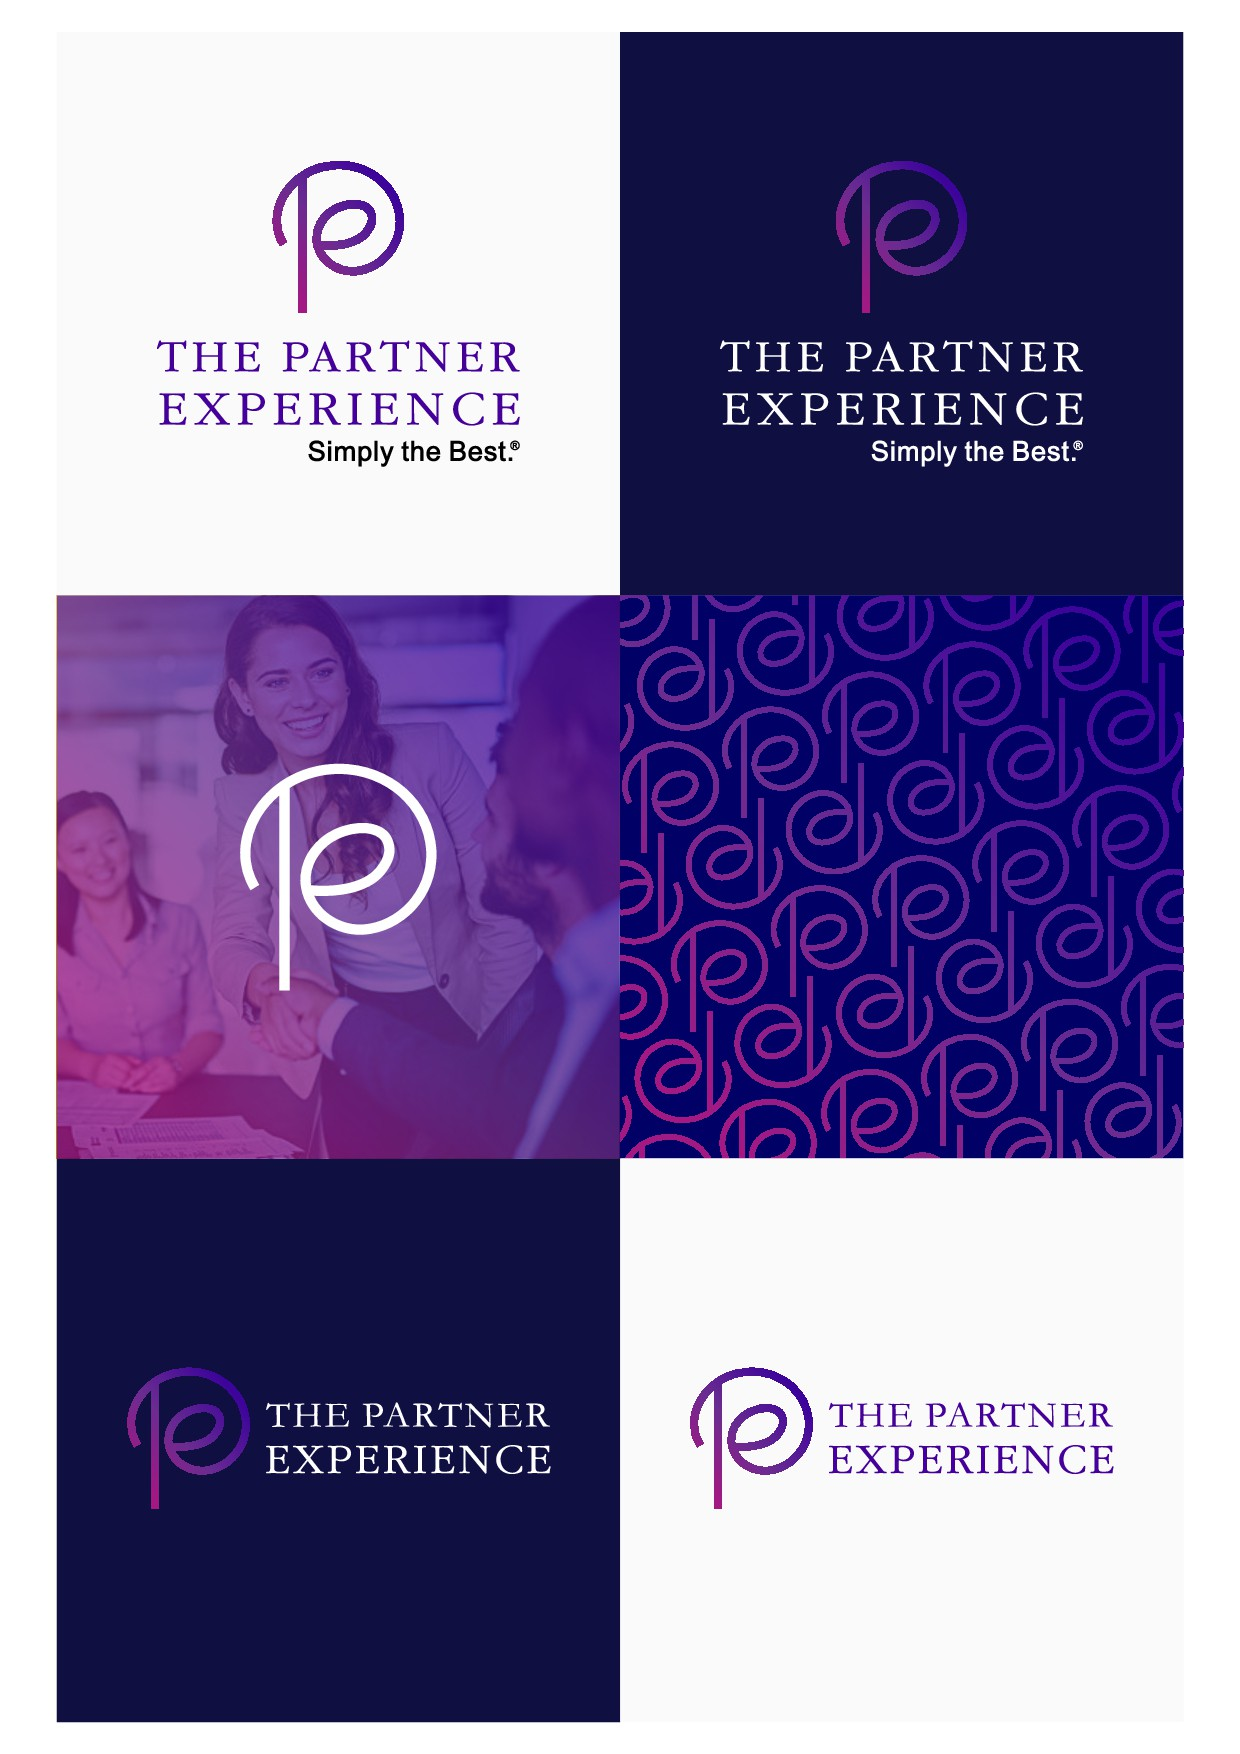 """We need an amazing logo to launch our new initiative, """"The Partner Experience"""""""